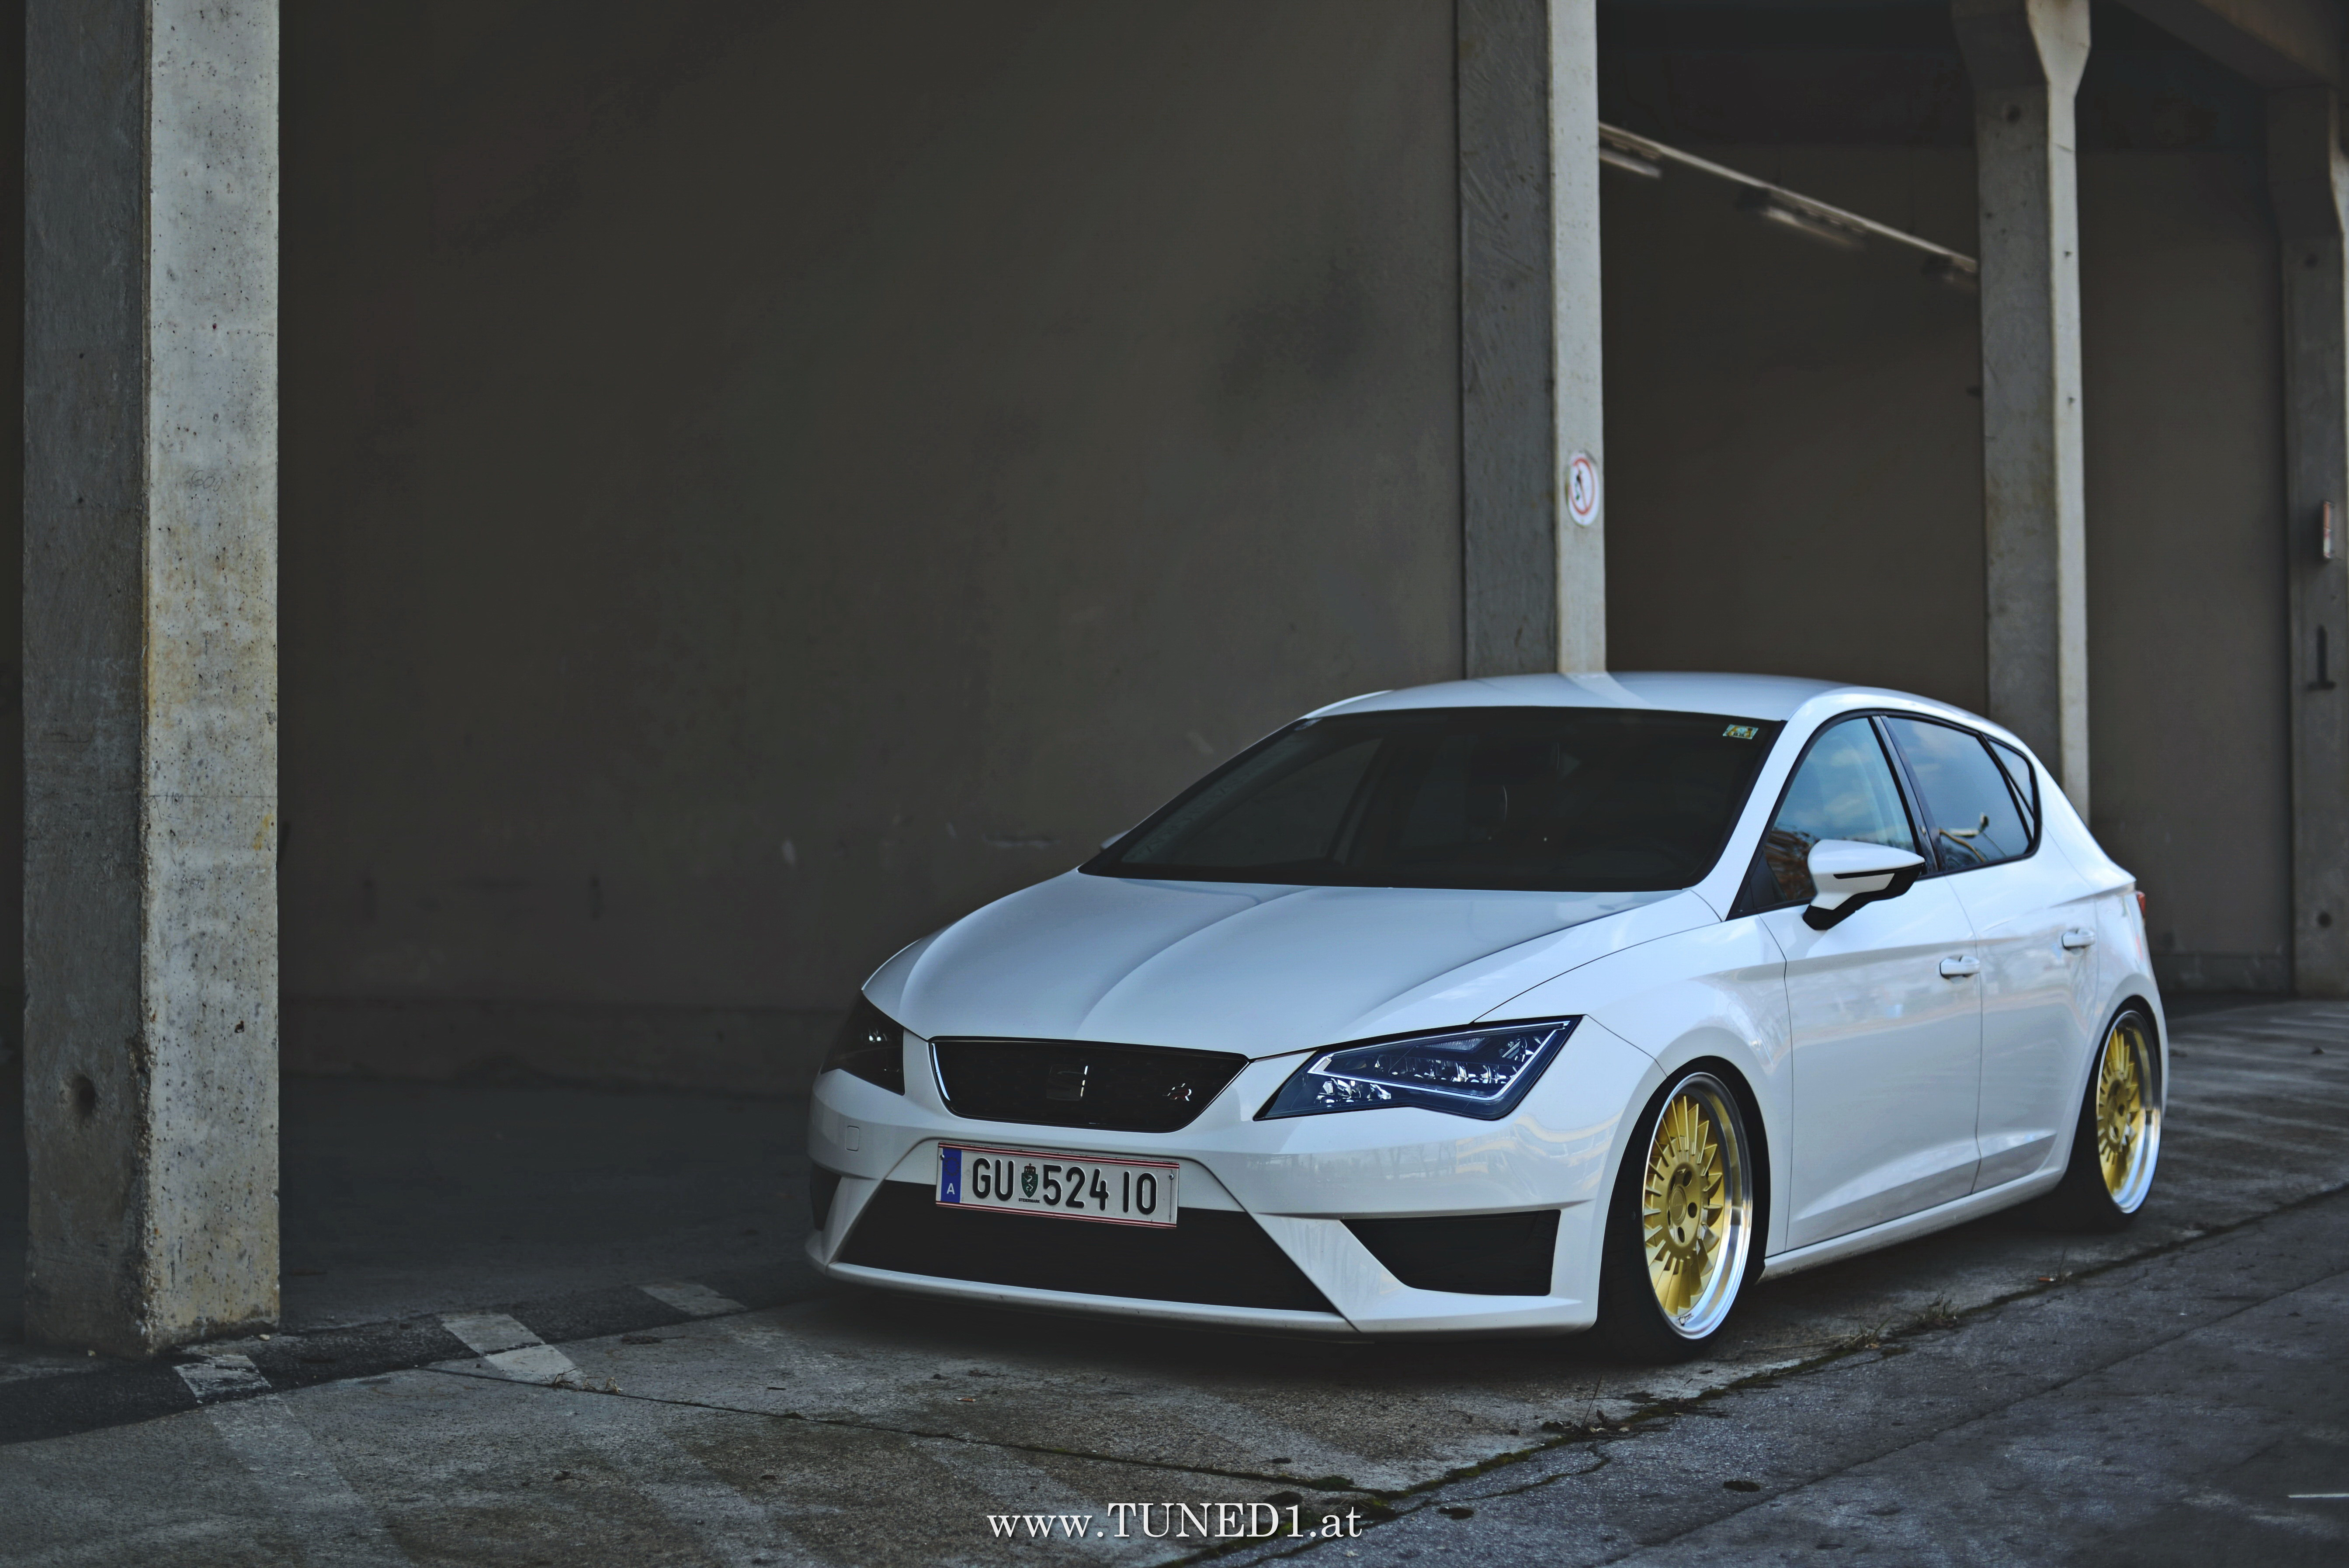 Seat Leon 5f Drive Hard On New Wheels Www Tuned1 At